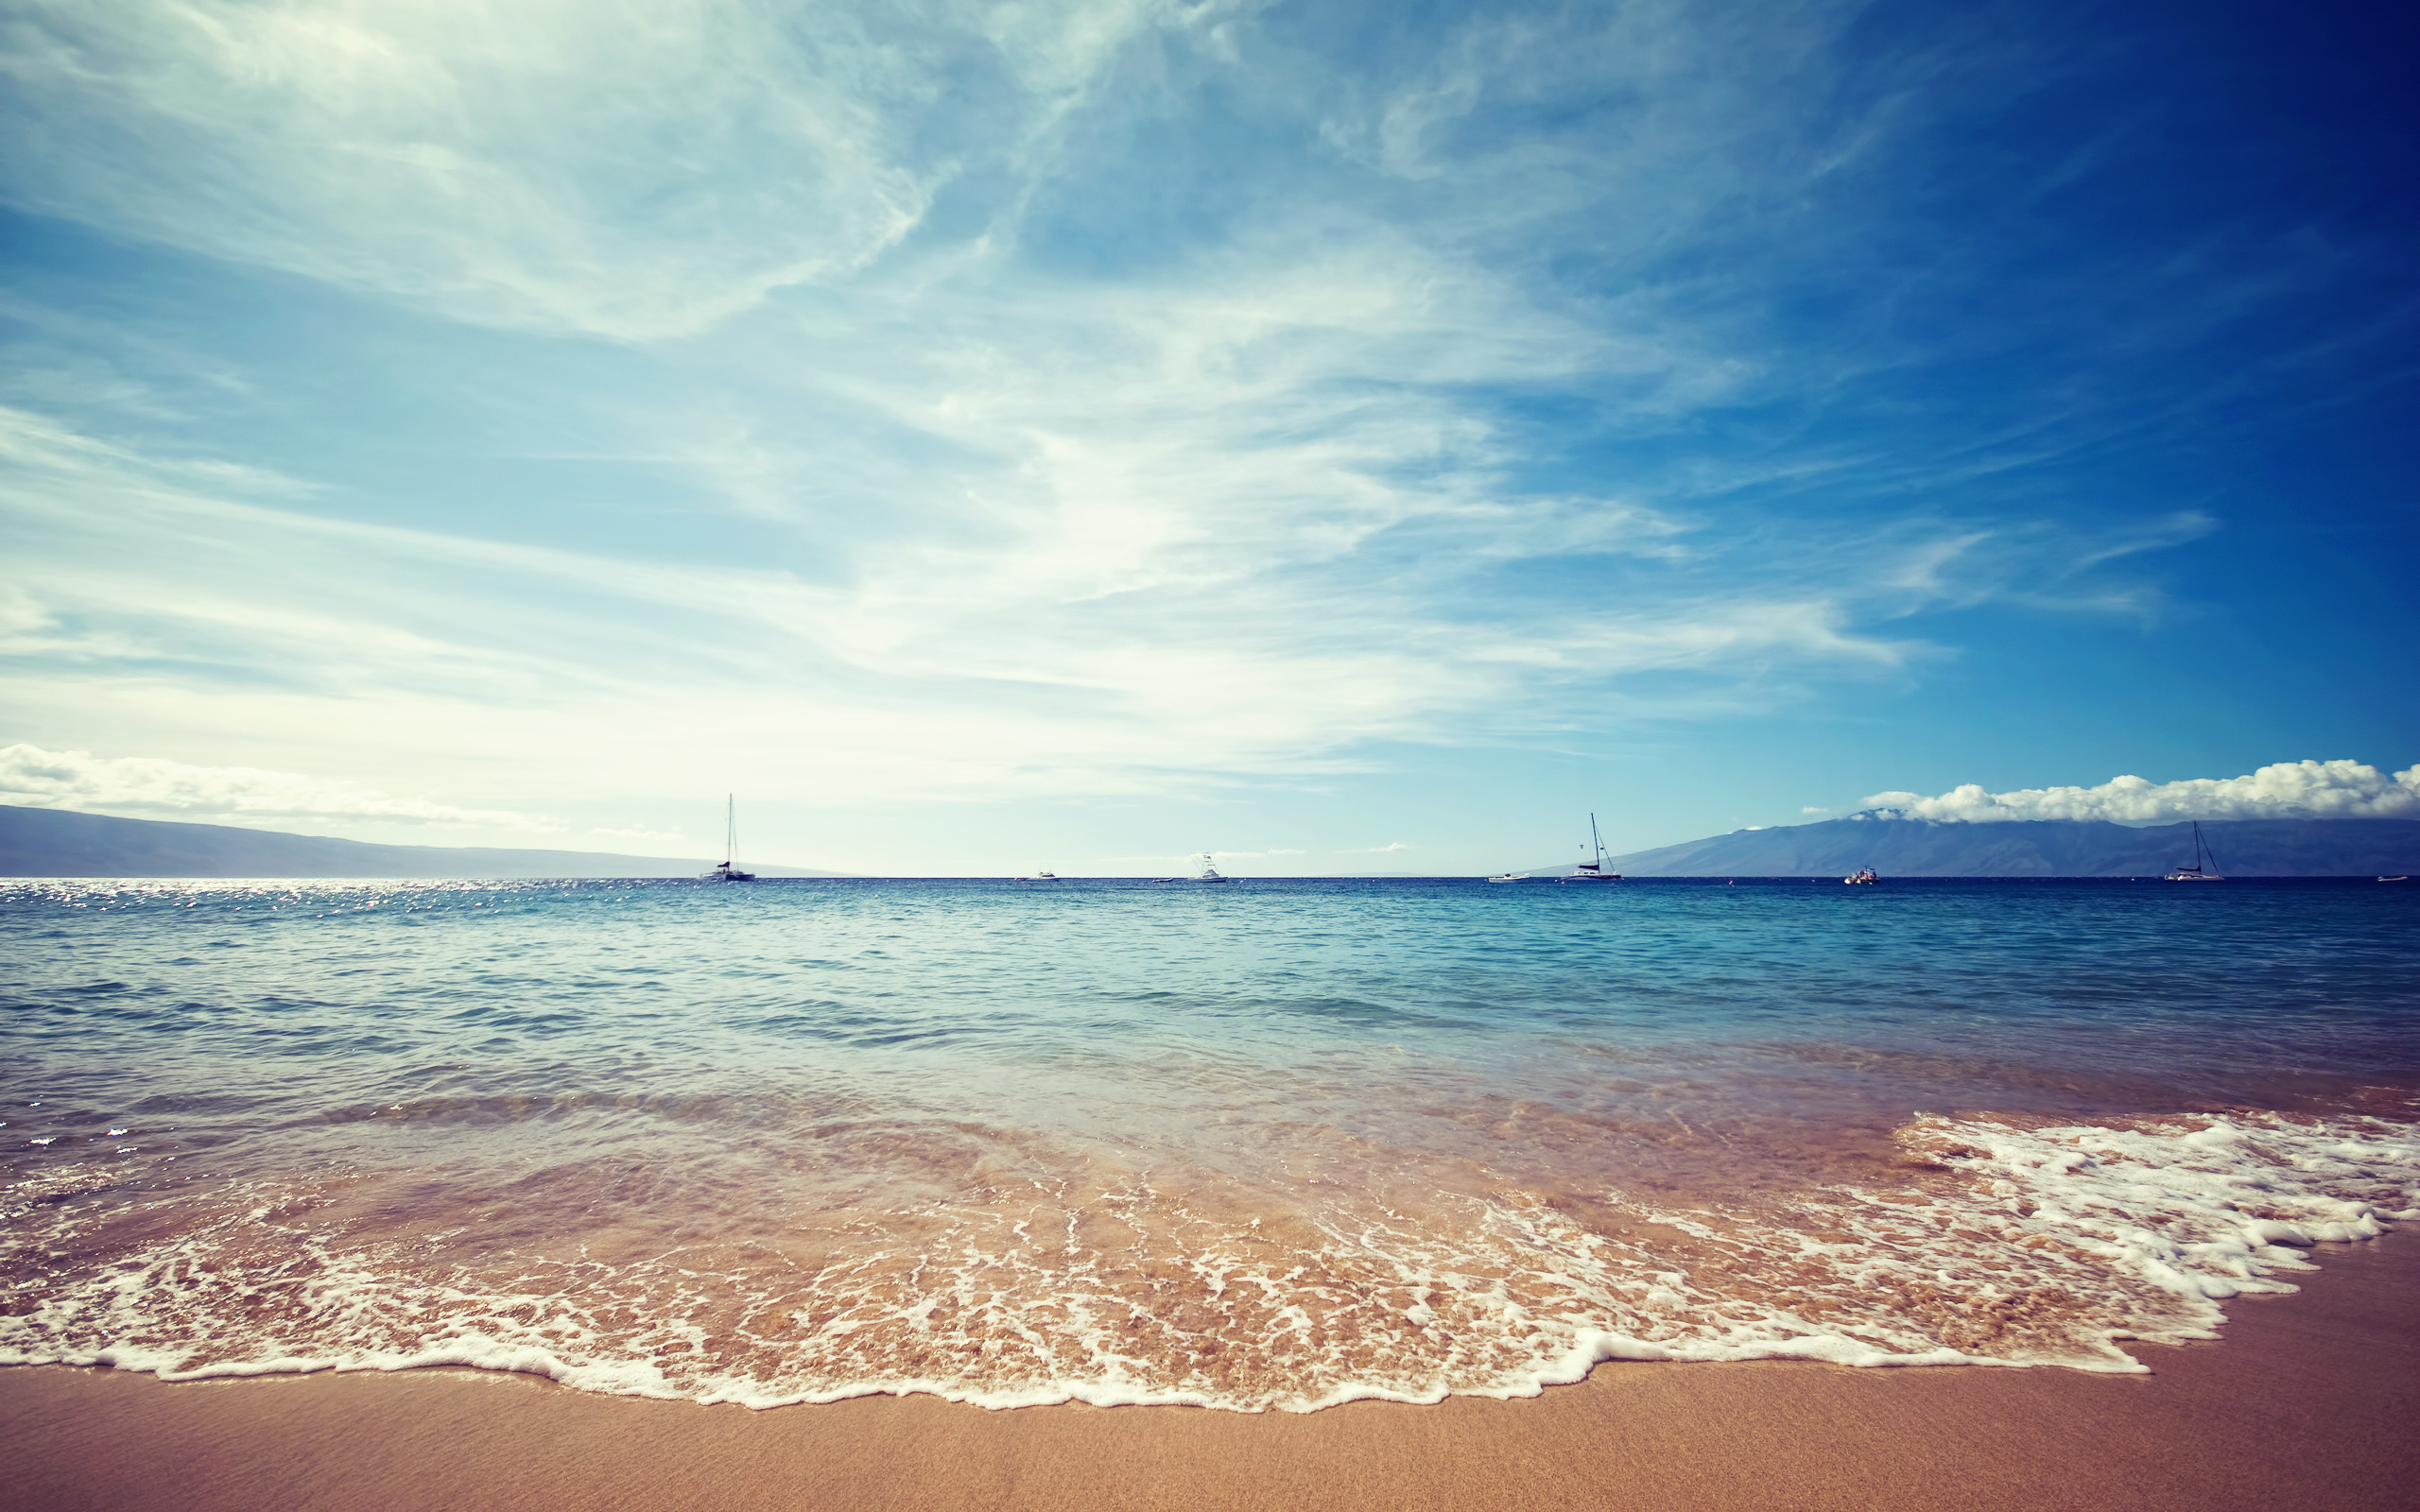 50 Beautiful Beaches Pictures And Wallpapers 2560x1600